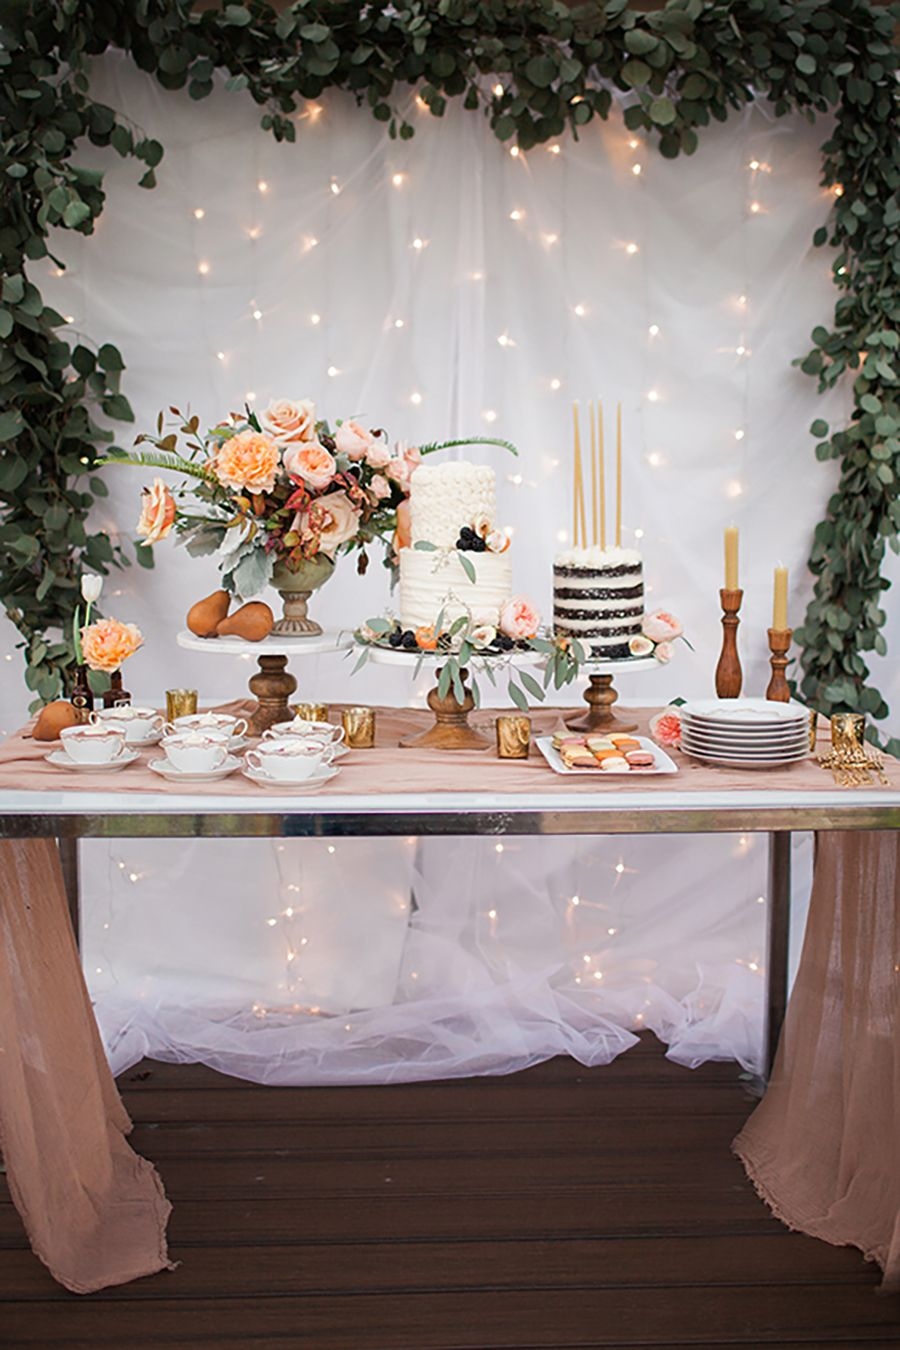 Birthday cake table decorations dessert rustic st also th celebration dripping in florals board rh hu pinterest